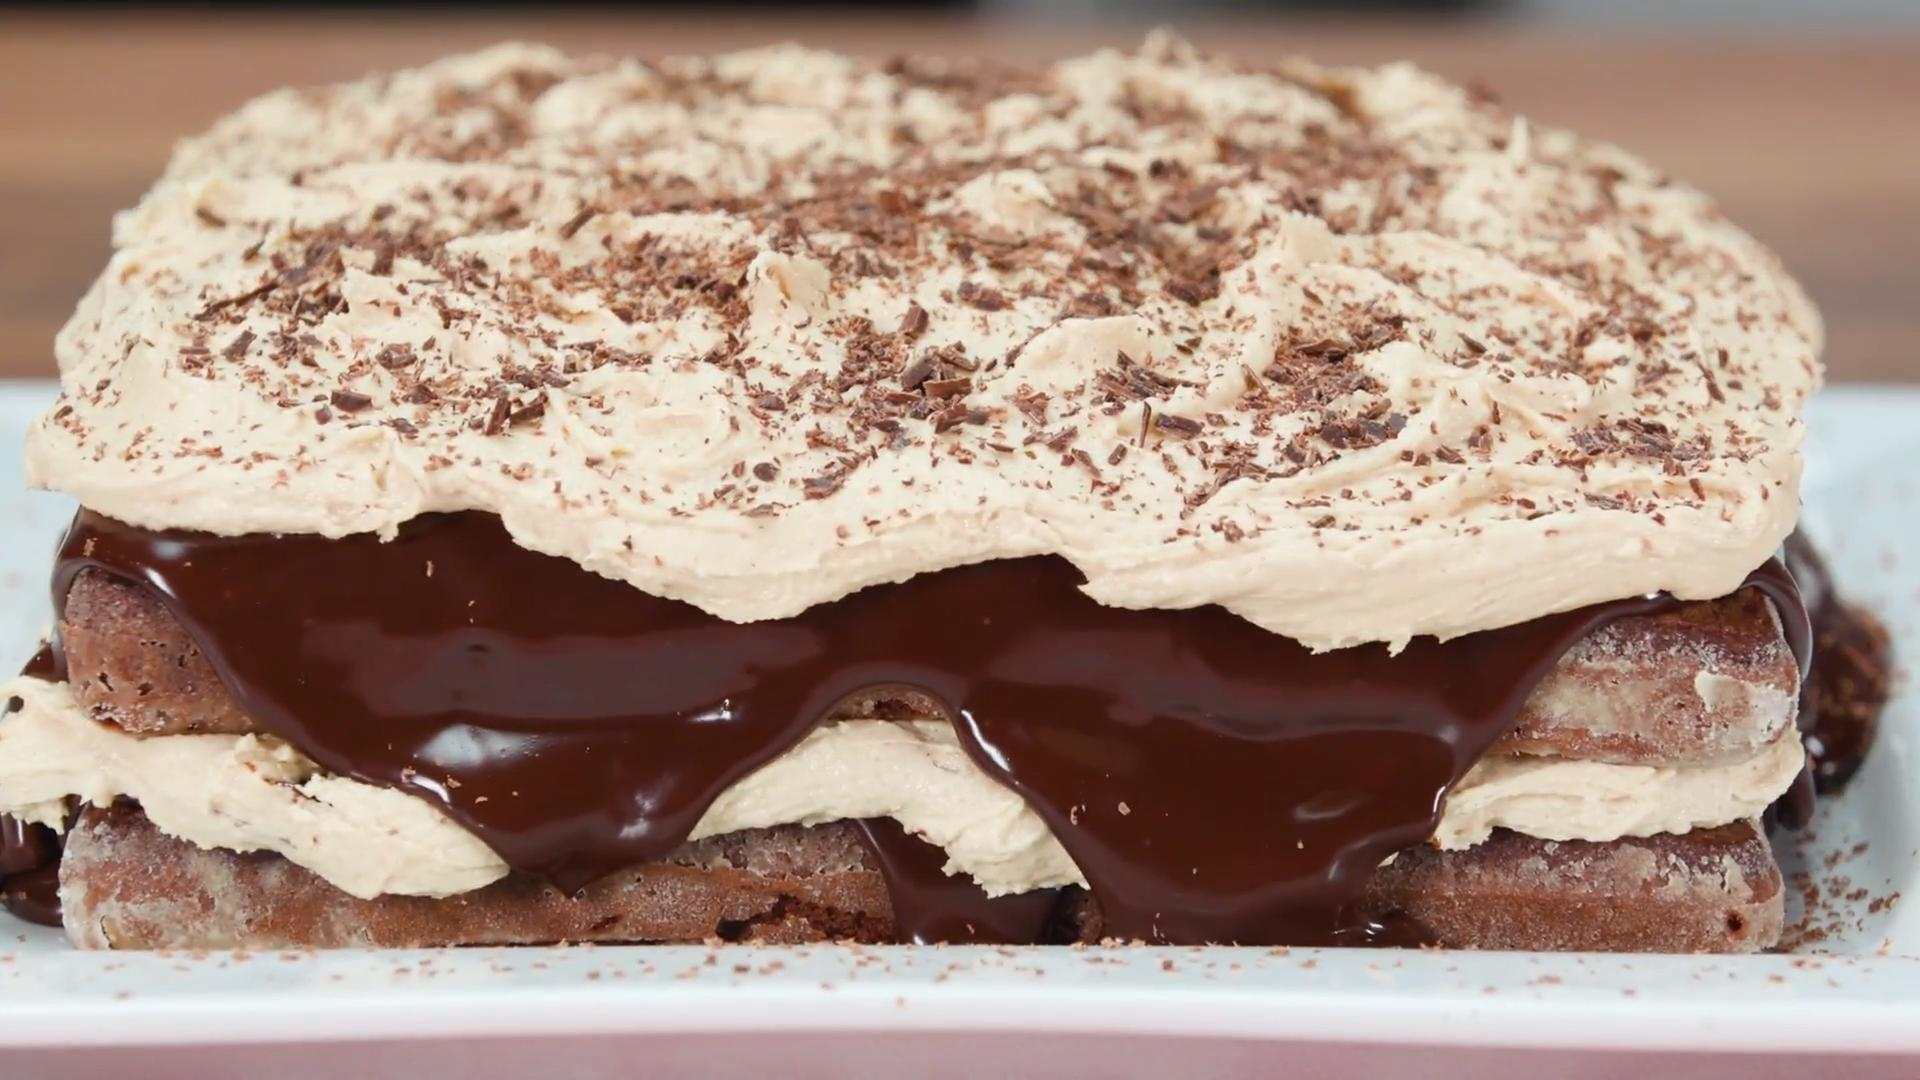 How to Make a Chocolate Fudge Layer Cake with Caramel Buttercream